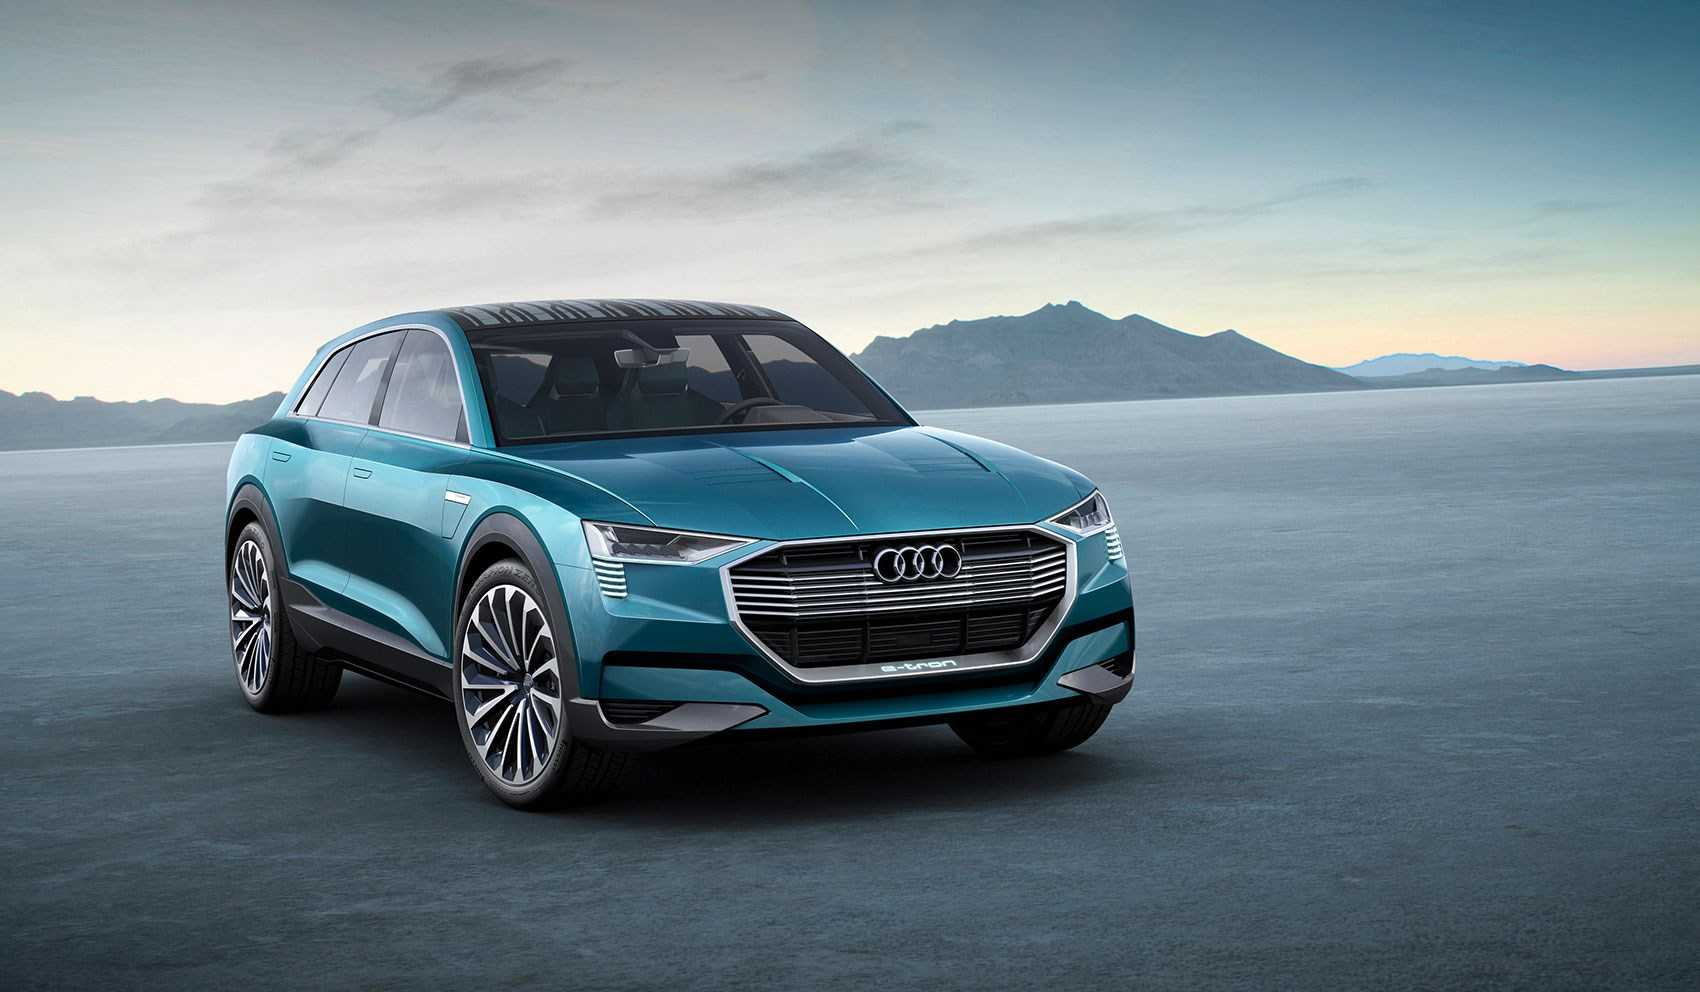 Audi E-Tron Quattro is Here, Should Tesla Be Worried?